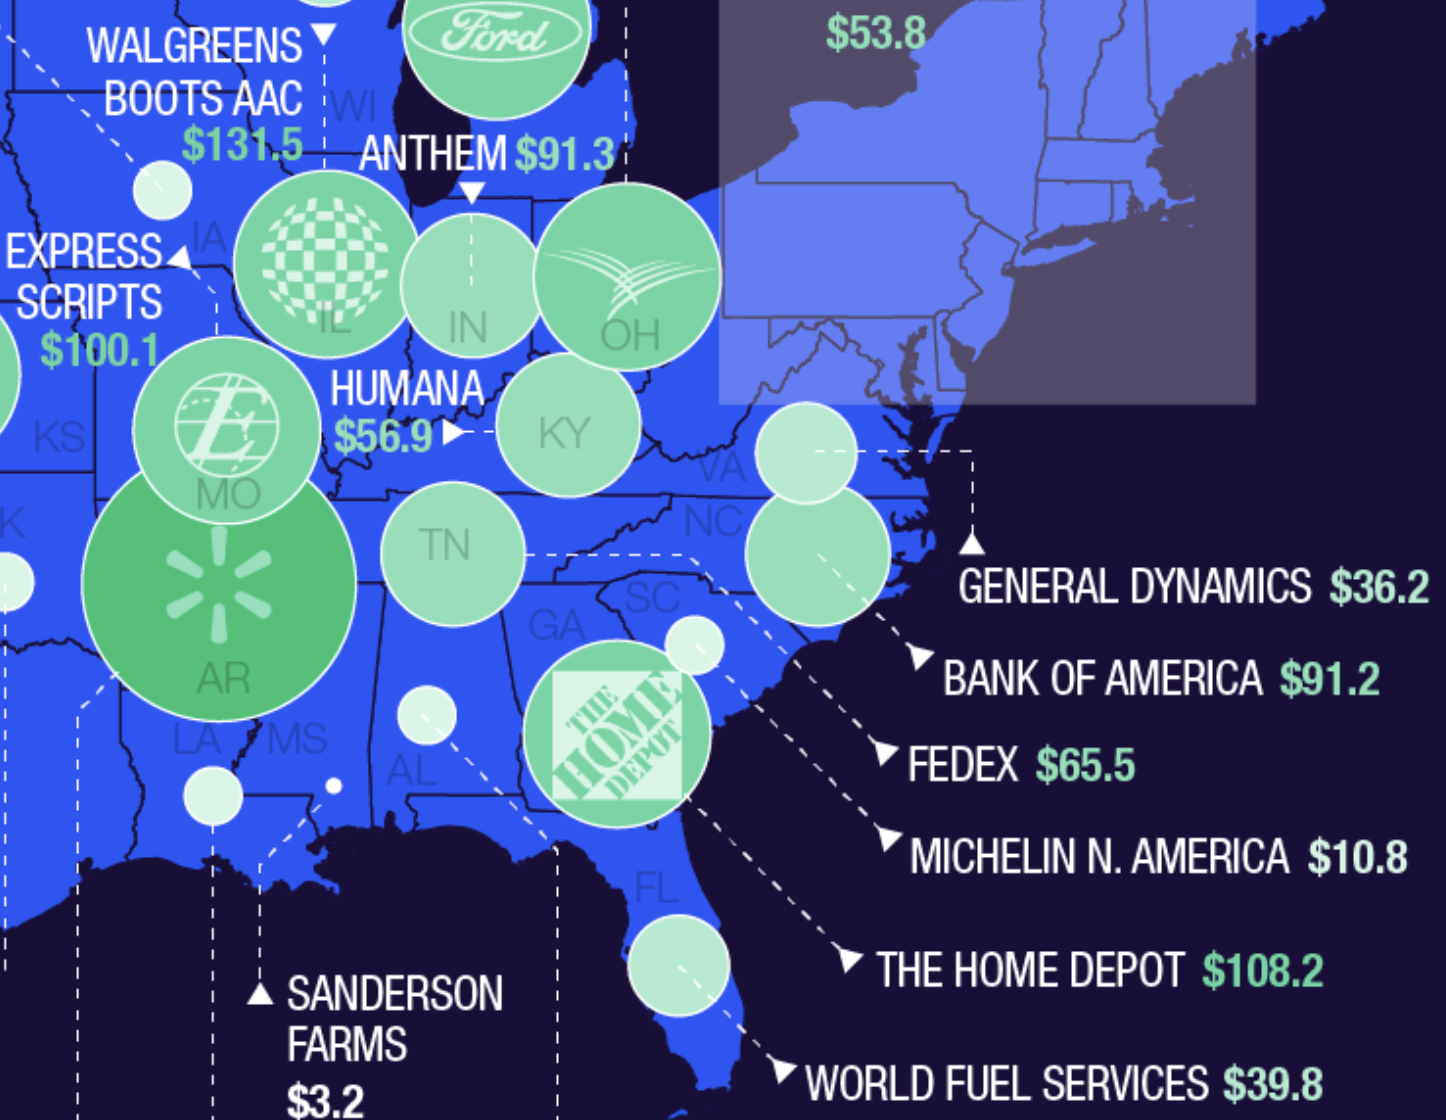 These are the largest companies in each U.S. state on walmart state maps, rand mcnally state maps, aol state maps, google state maps, bing state maps, brazil state maps, amazon state maps, microsoft state maps, europe state maps, mapquest state maps,